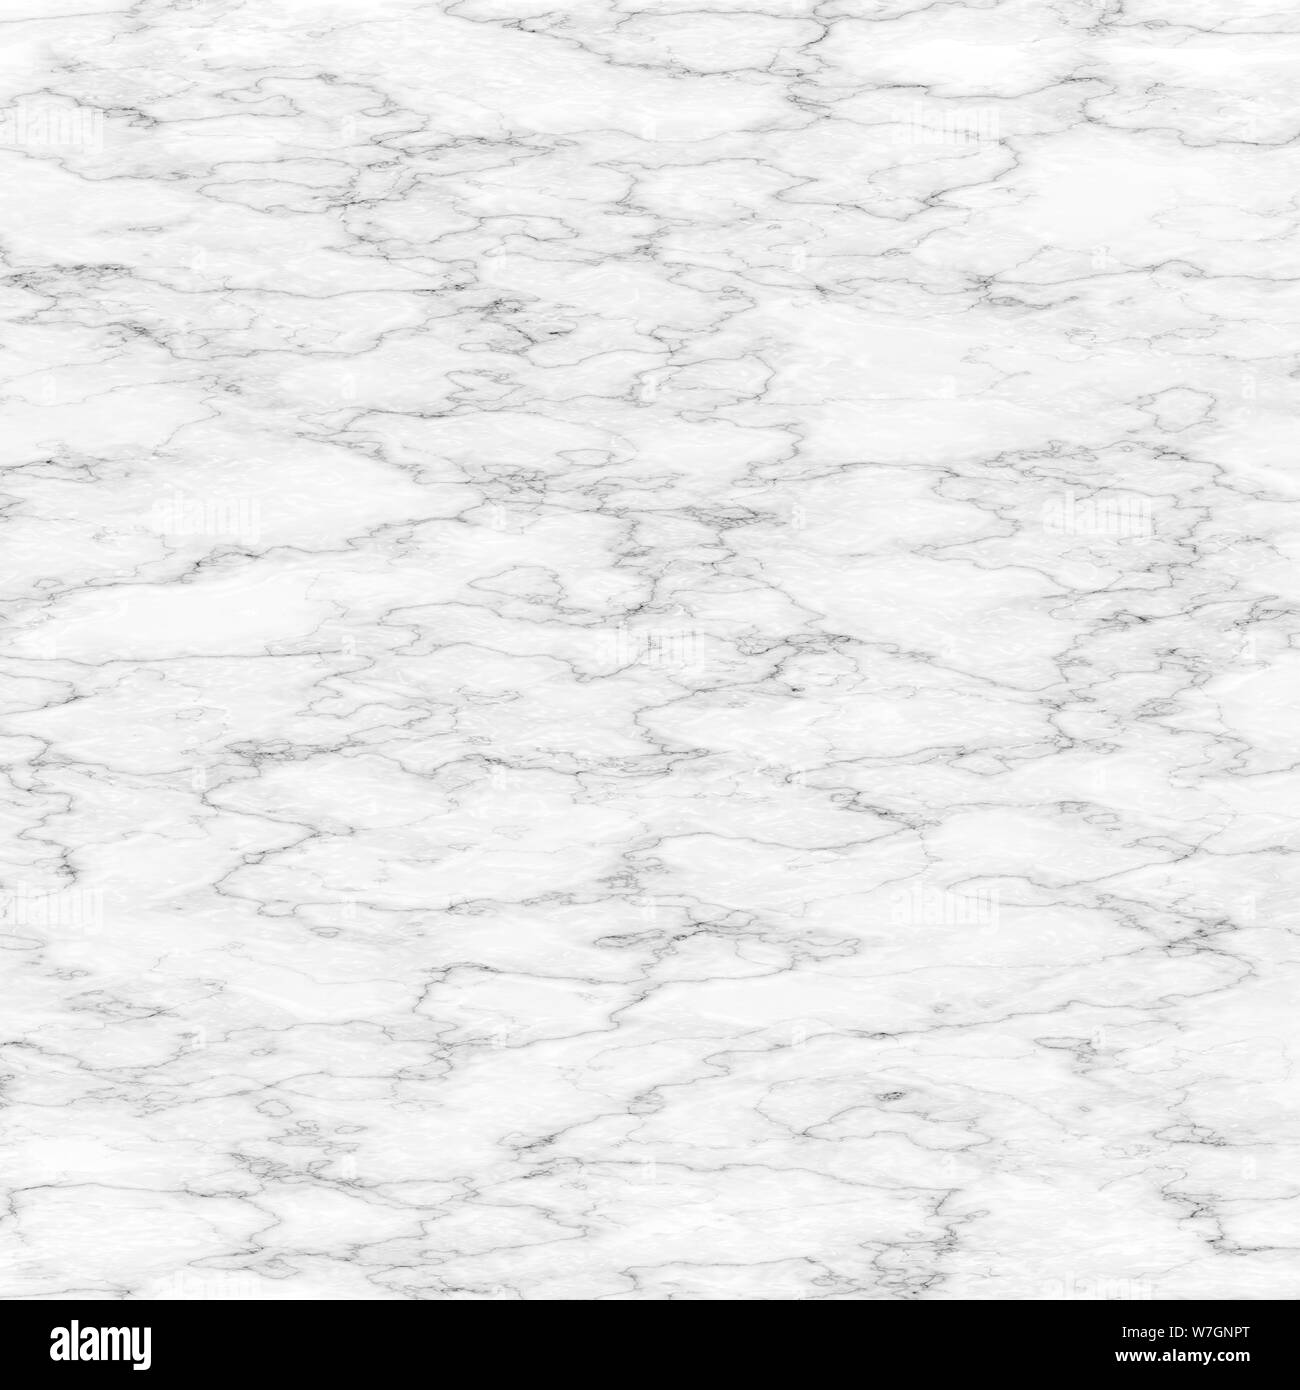 White Marble Texture With Natural Pattern For Background Or Interior Design Art Work Abstract Marble Tile Surface Rock Floor Detail Stock Photo Alamy